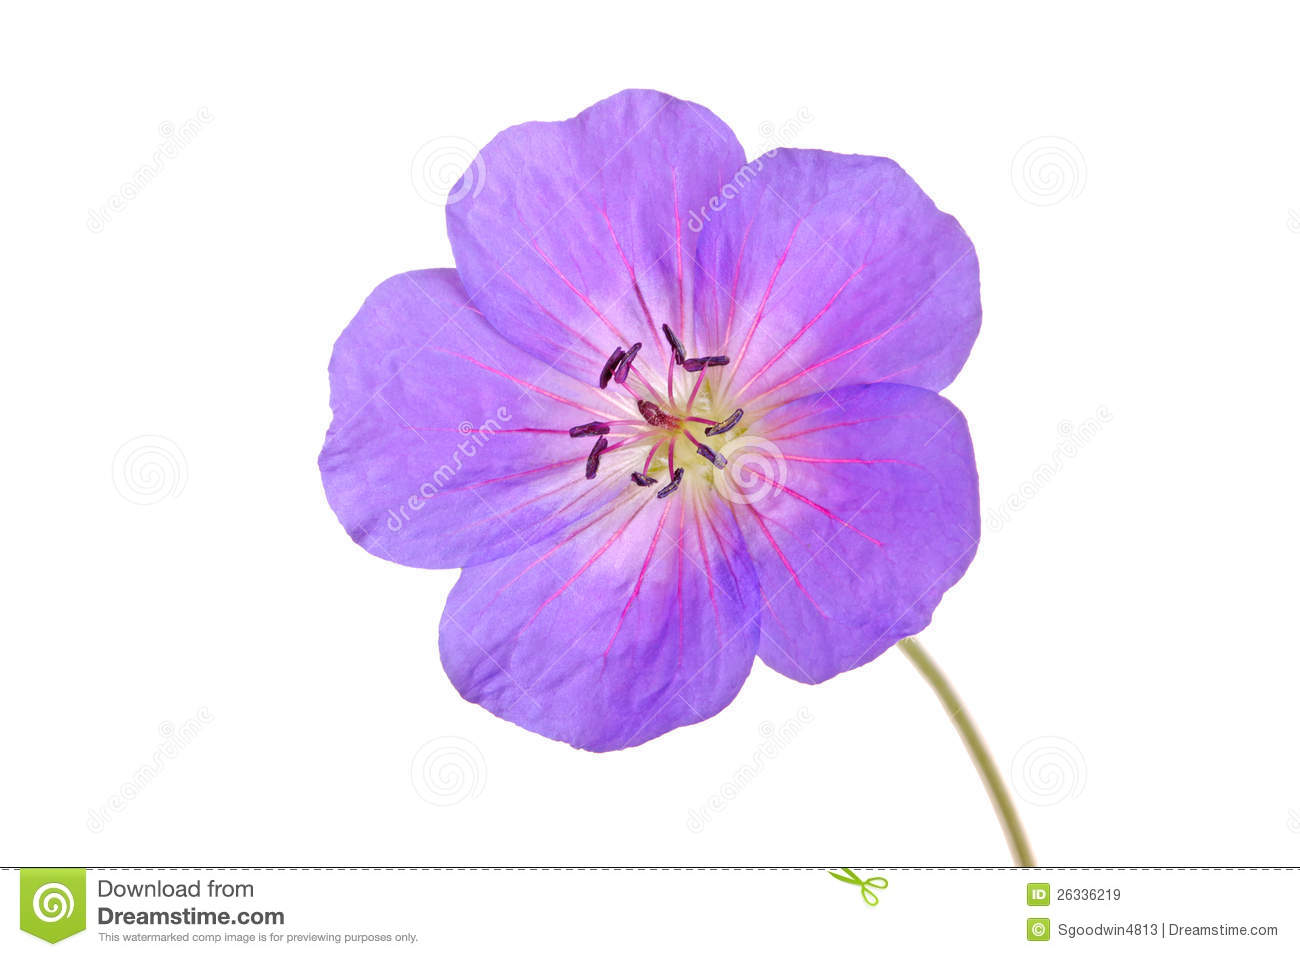 Single Flower Of A Geranium Cultivar Royalty Free Stock Images.